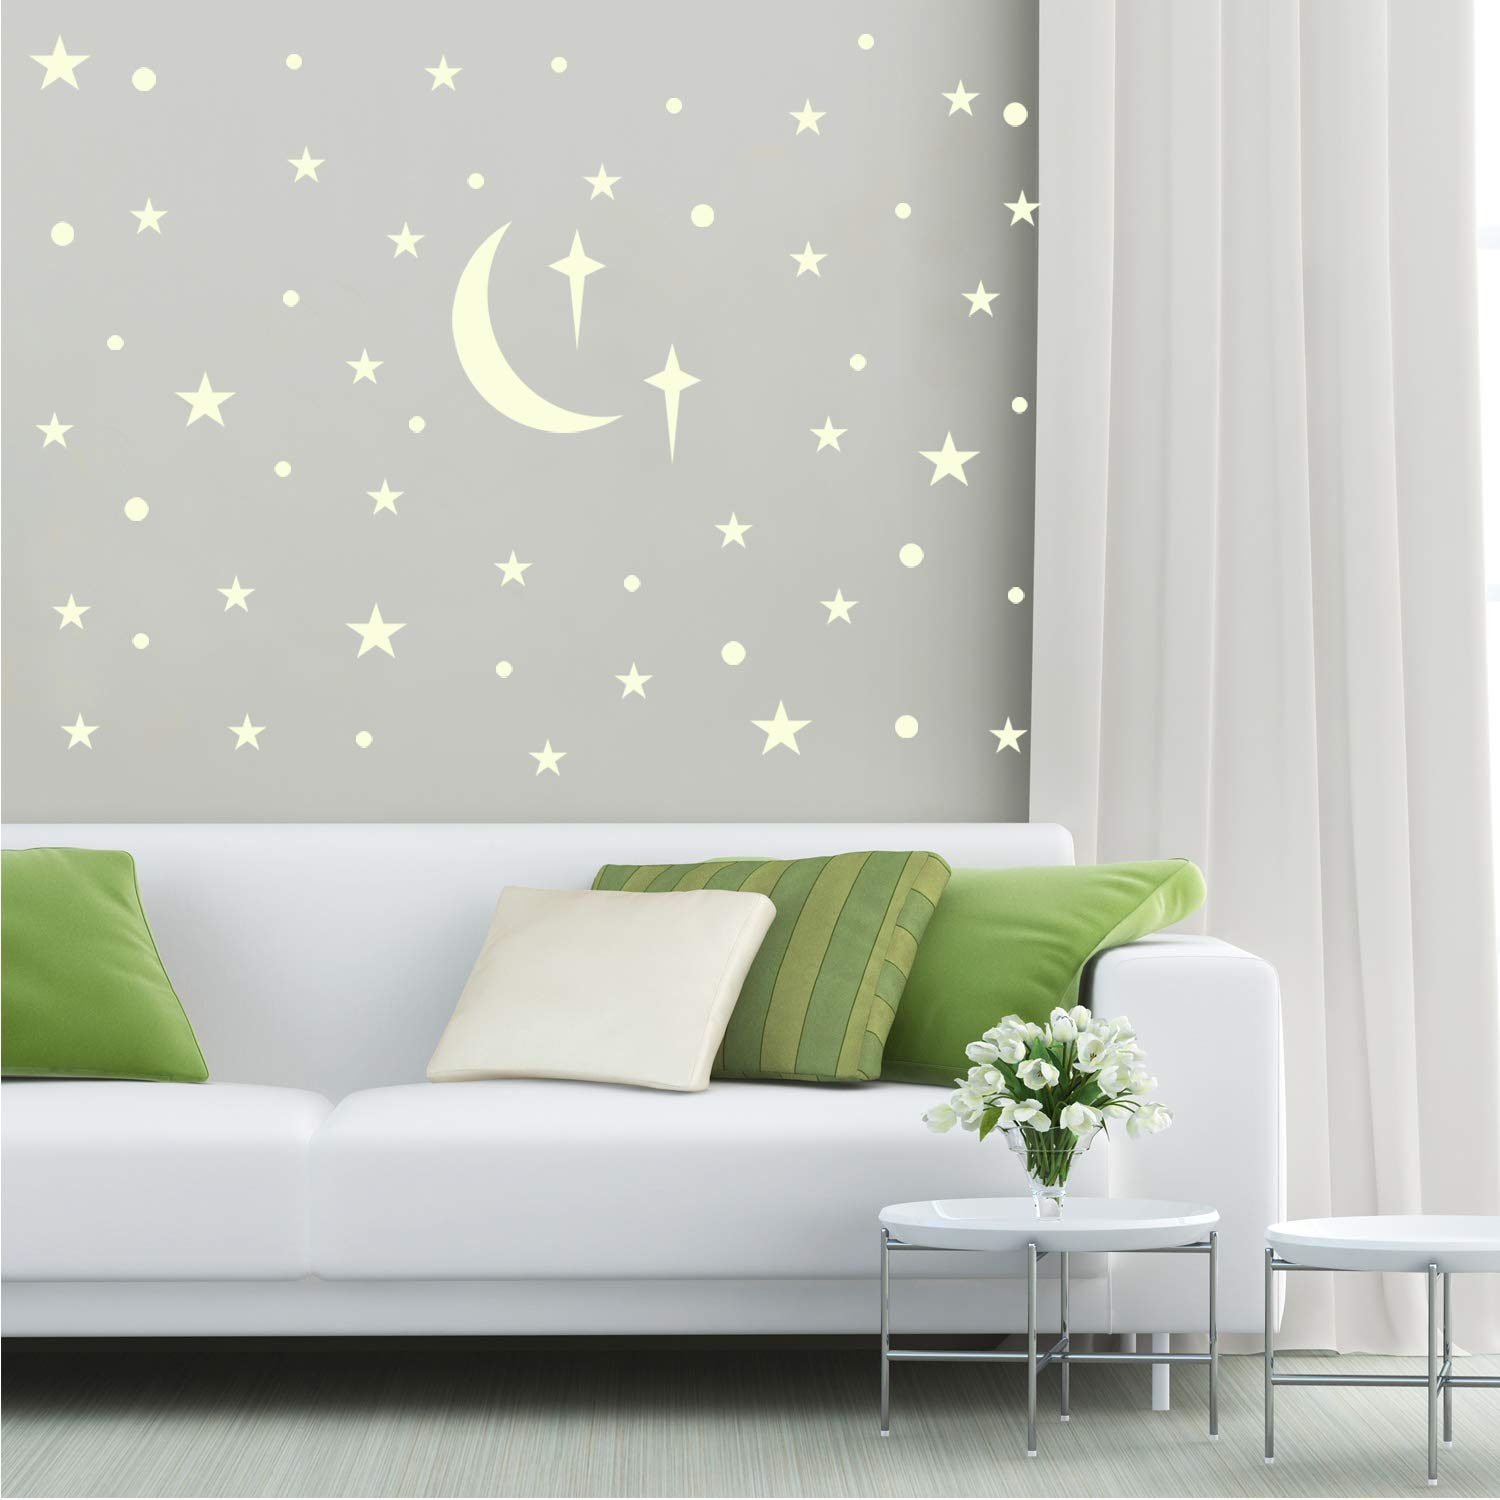 Hippomee Glowing Wall Decals Stickers for Kids Girls Boys Bedroom or Birthday Gift Pack of 69 Adhesive Dots 70 Stars 1 Moon Glow in The Dark Stars